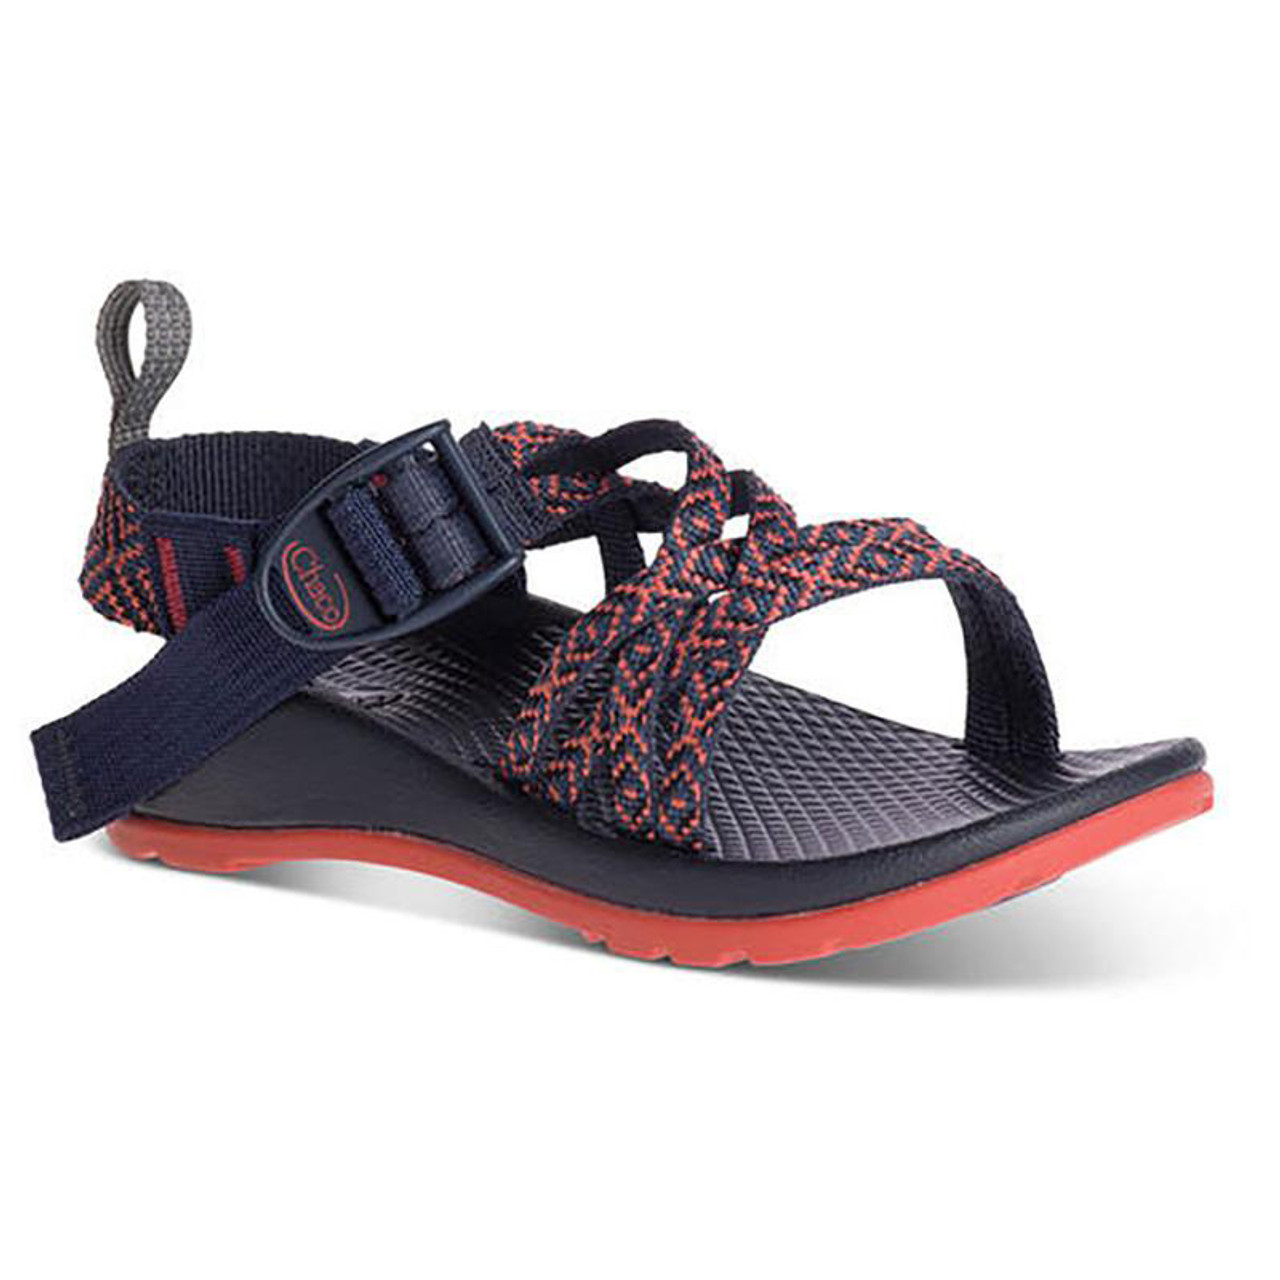 31eea1b1f7db Chaco Kid s Sandal - ZX 1 Kids - Padded Eclipse - Surf and Dirt